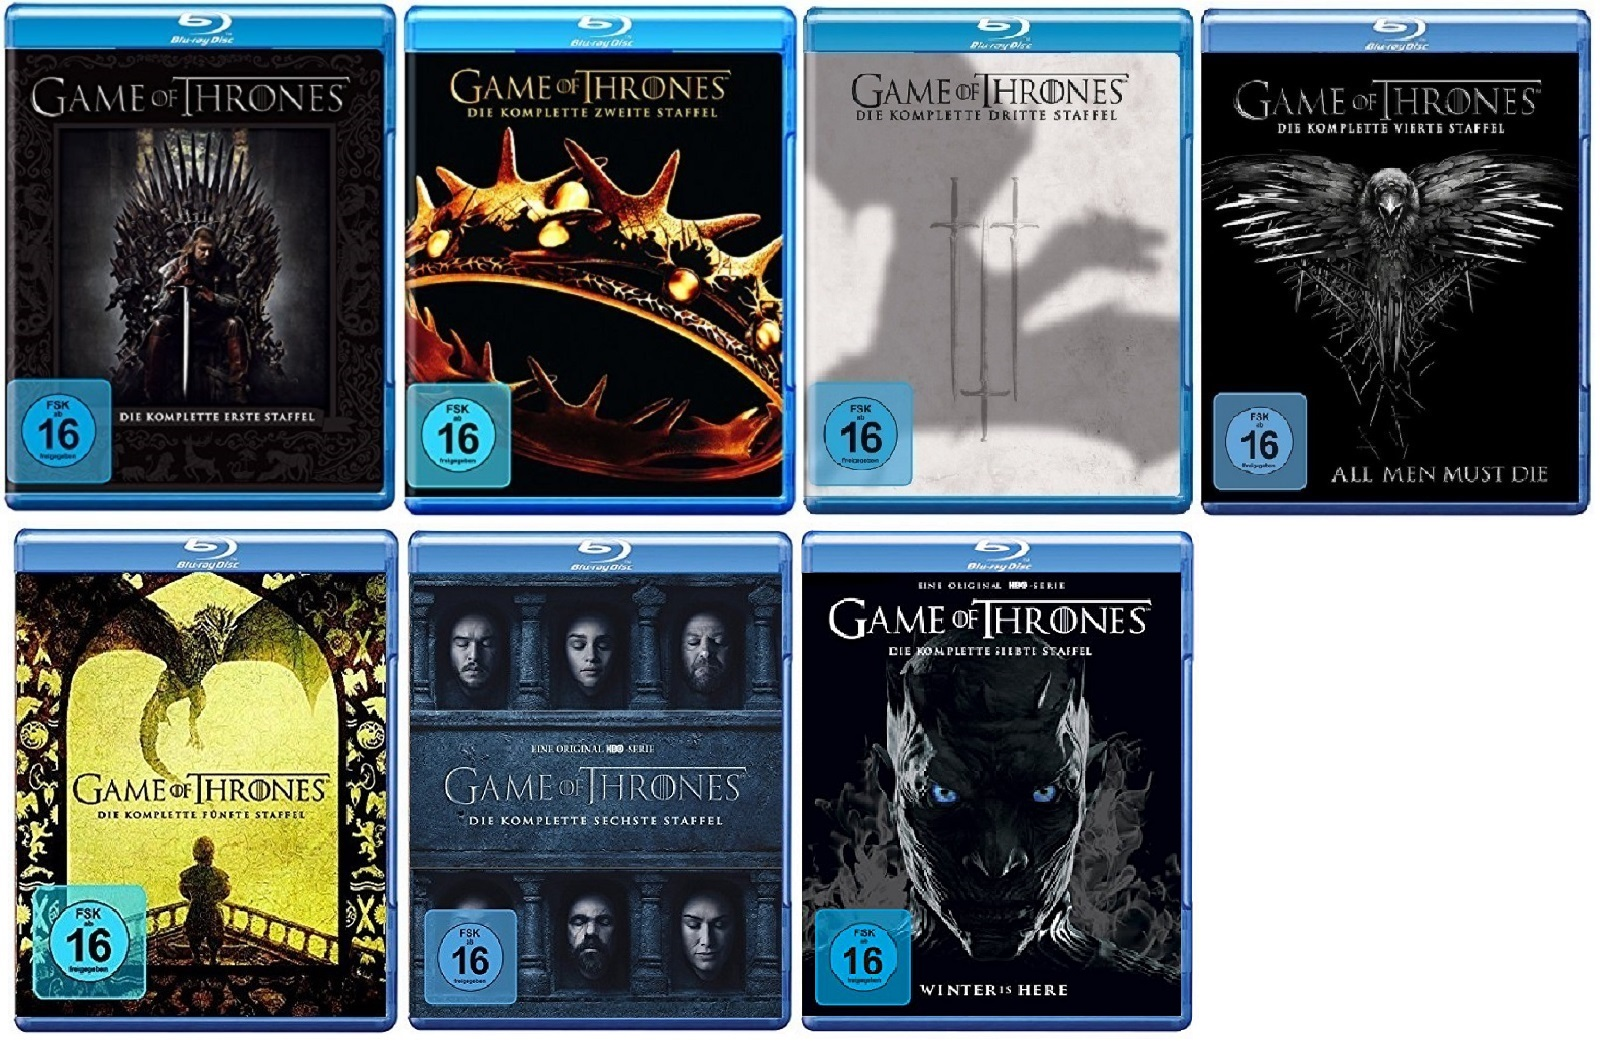 Details Zu Game Of Thrones Staffel 1 7 1234567 Blu Ray Set Neu Ovp